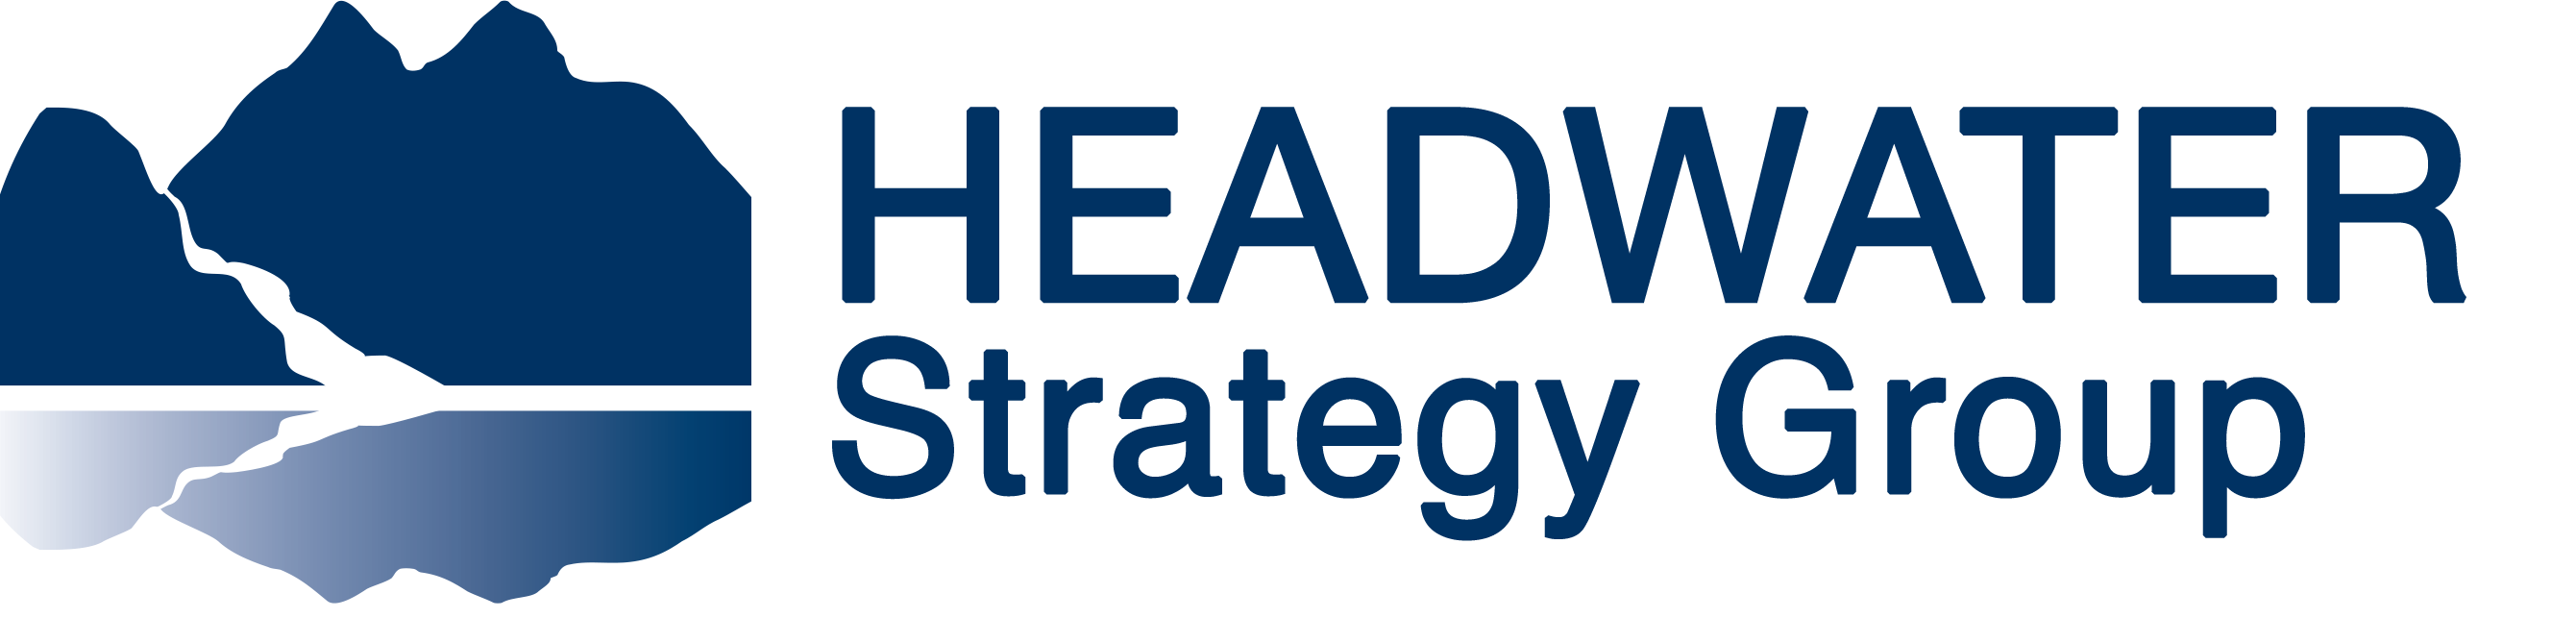 Headwater Group